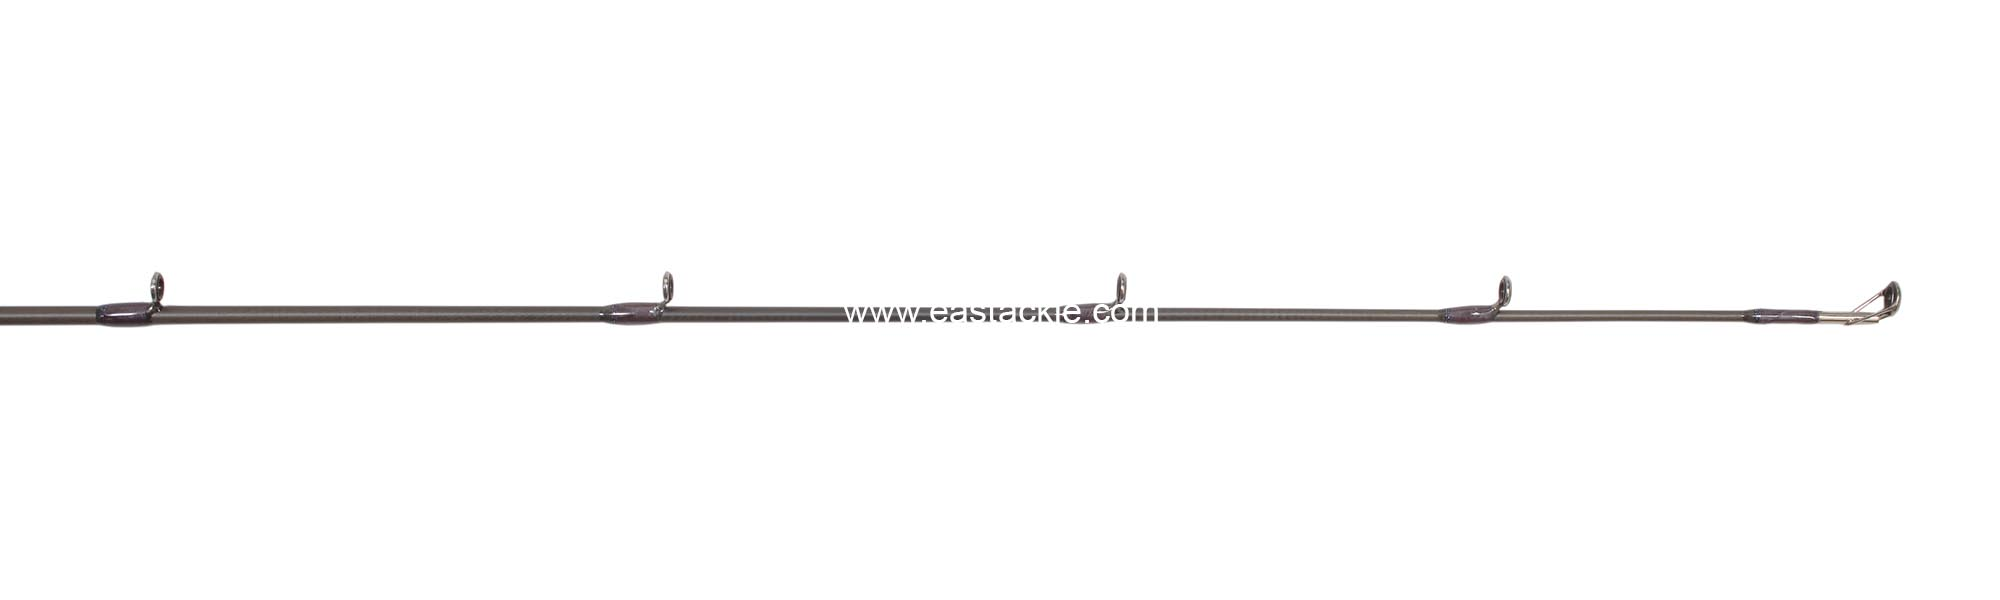 Storm - Adenture - Bait Casting Rod Series - Tip Section (Side View) | Eastackle